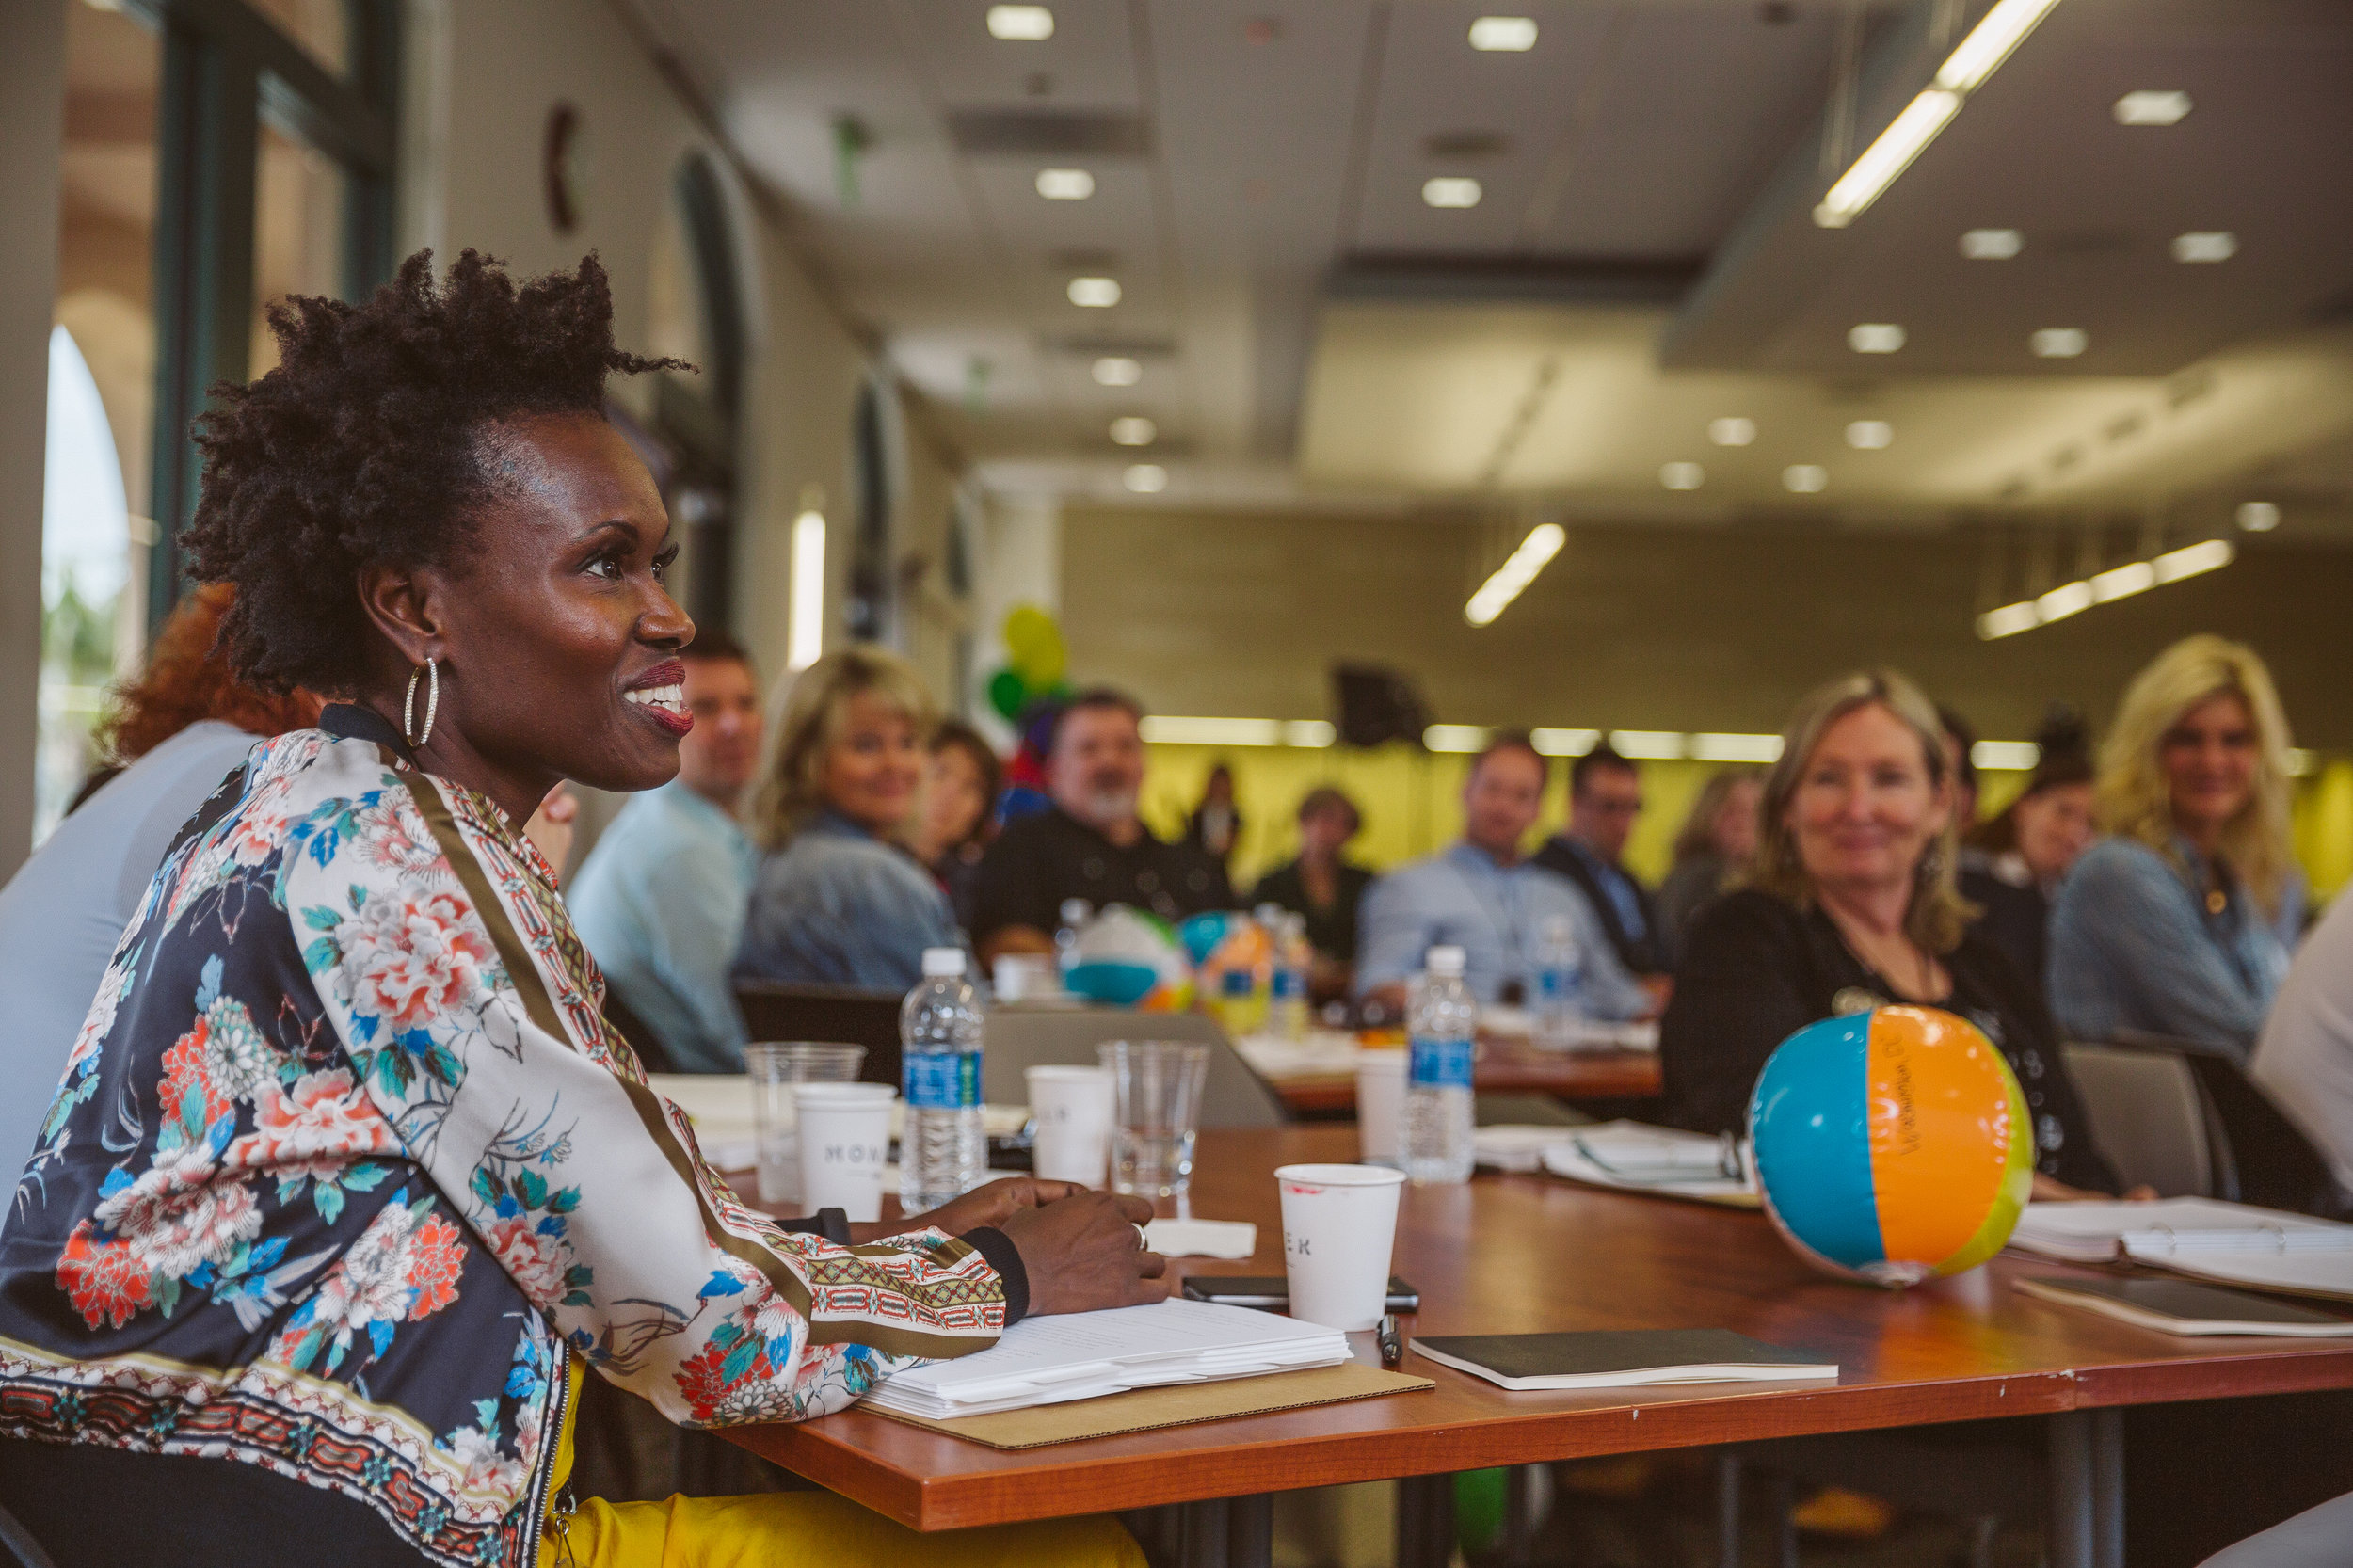 """""""This experience has been the best investment I have made for my future. It is so much more than the two-day workshop and coaching sessions. It is the rare opportunity to partner with someone who passionately believes in you and generously gives his time, wisdom and resources to see your dream come true.""""  - Grace - Philanthropist, Dream Big Attendee"""